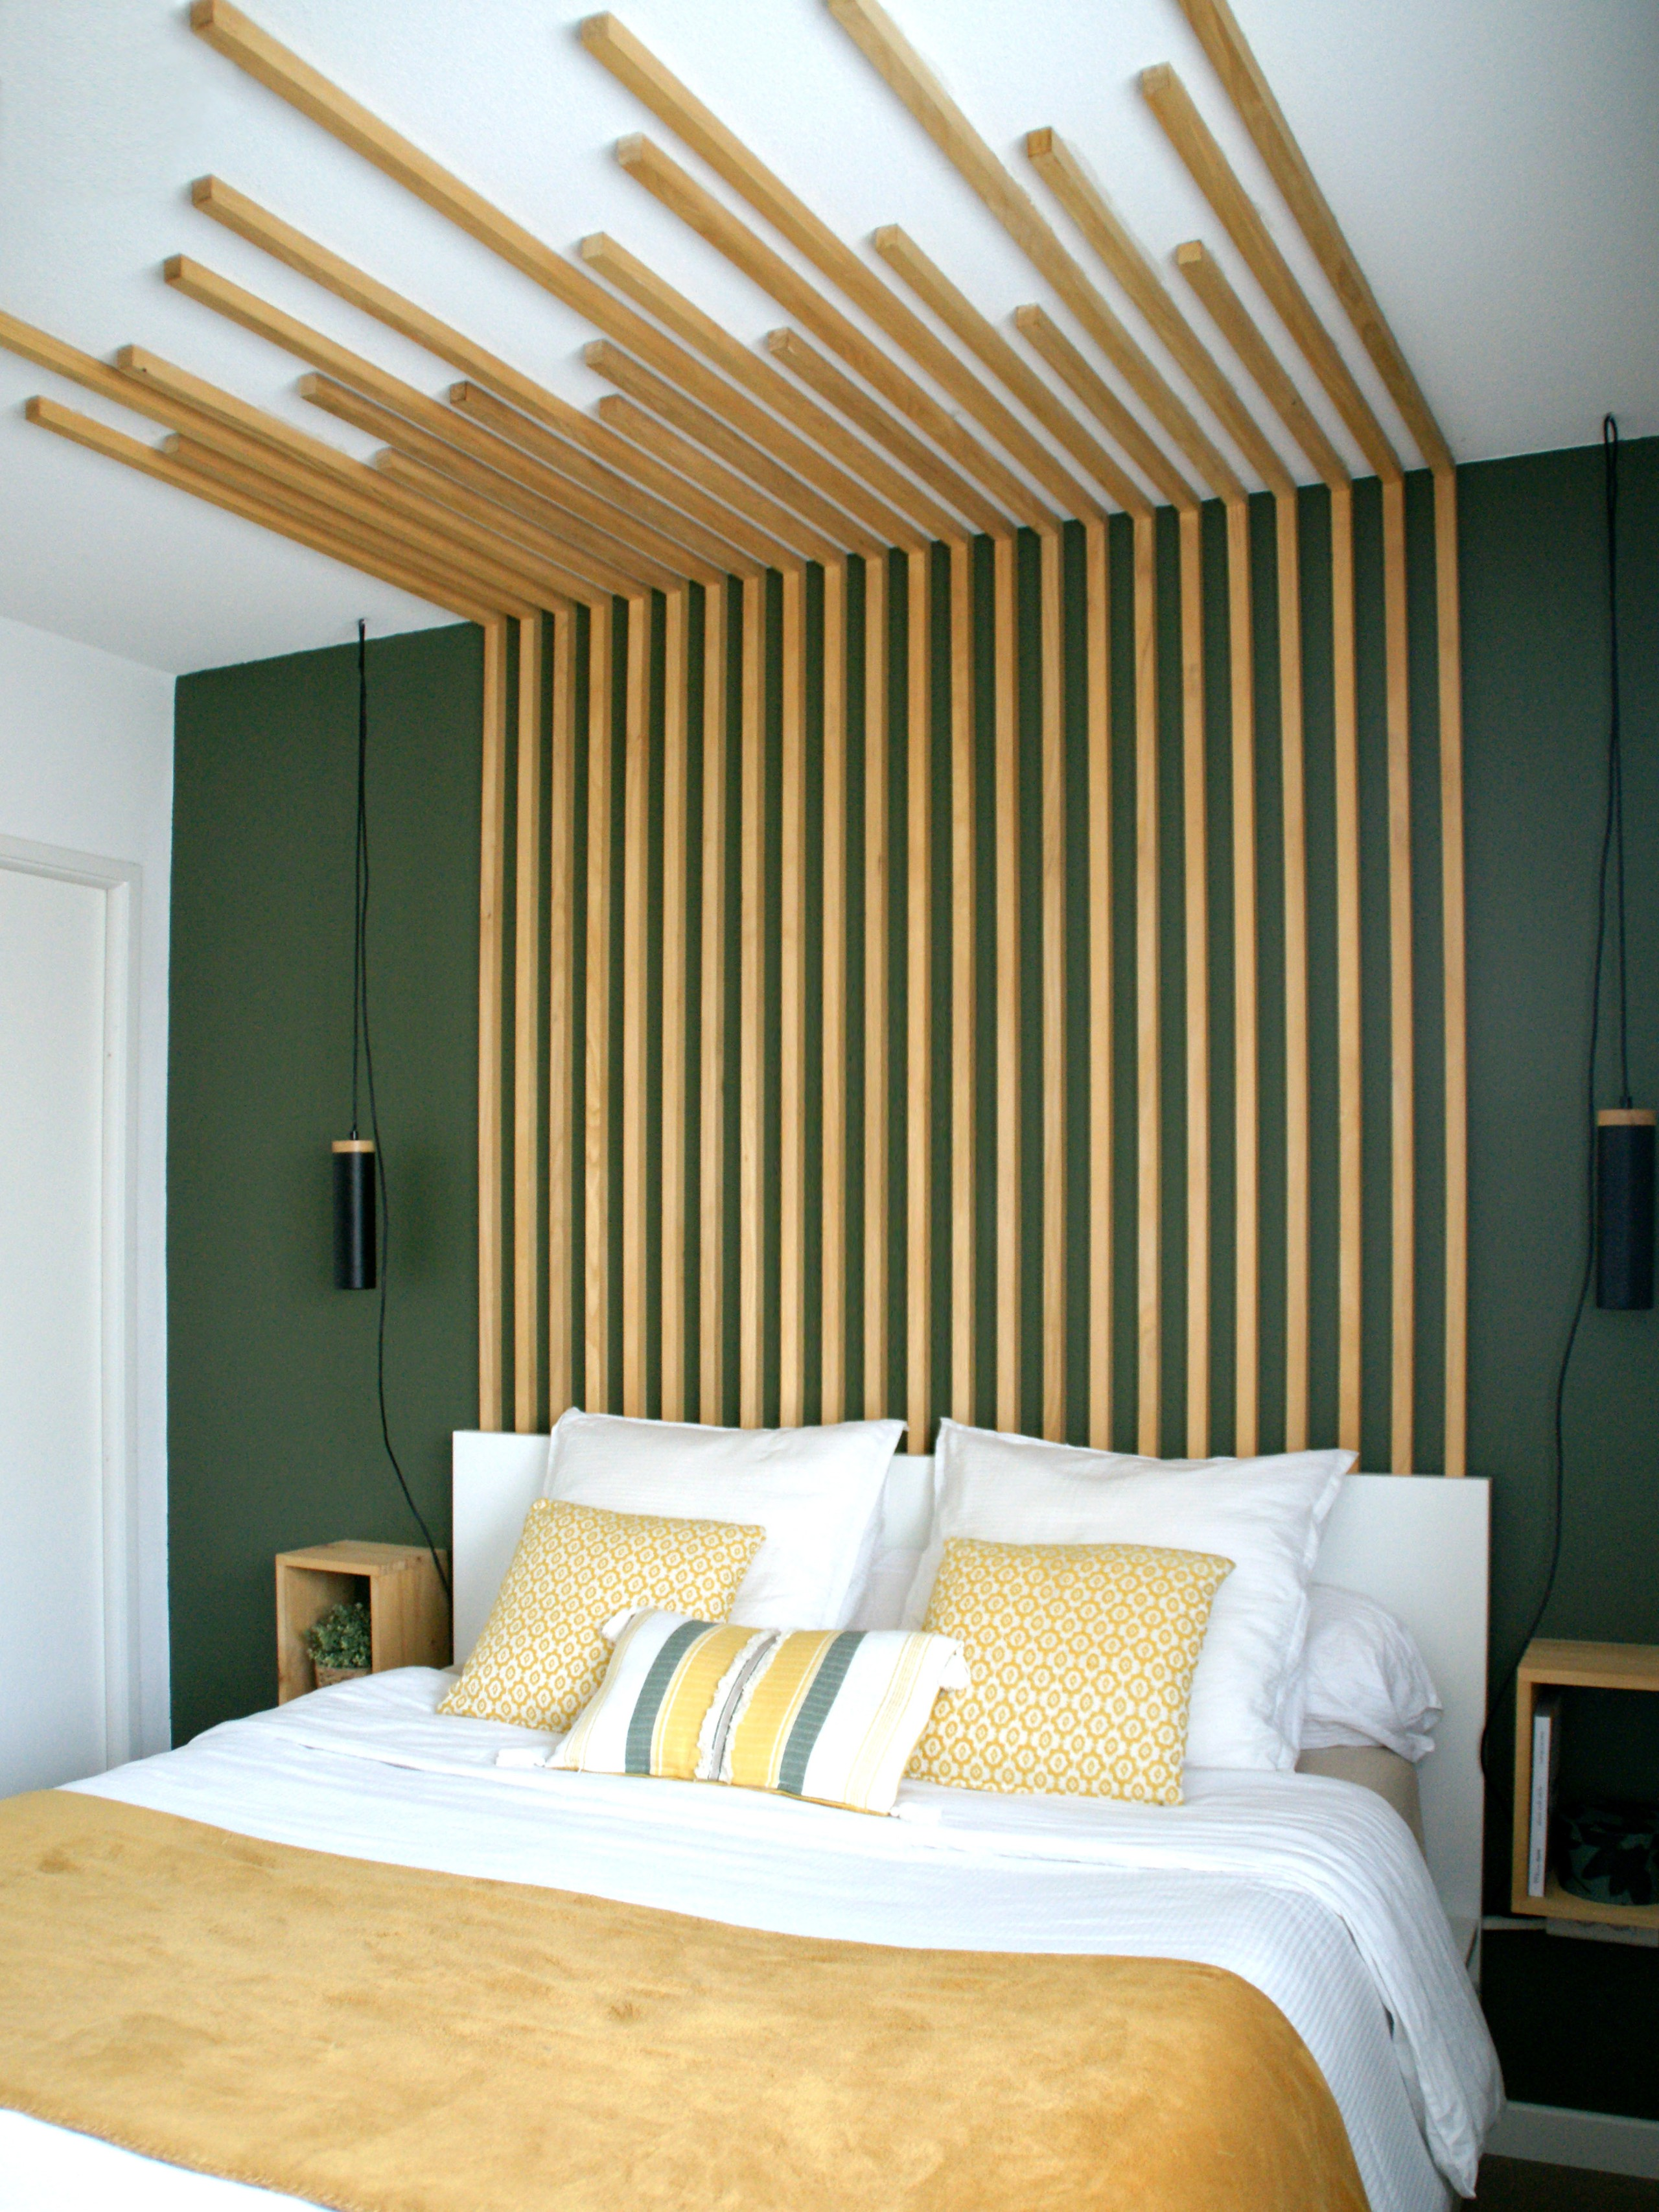 75 Beautiful Small Bedroom With Green Walls Pictures Ideas February 2021 Houzz